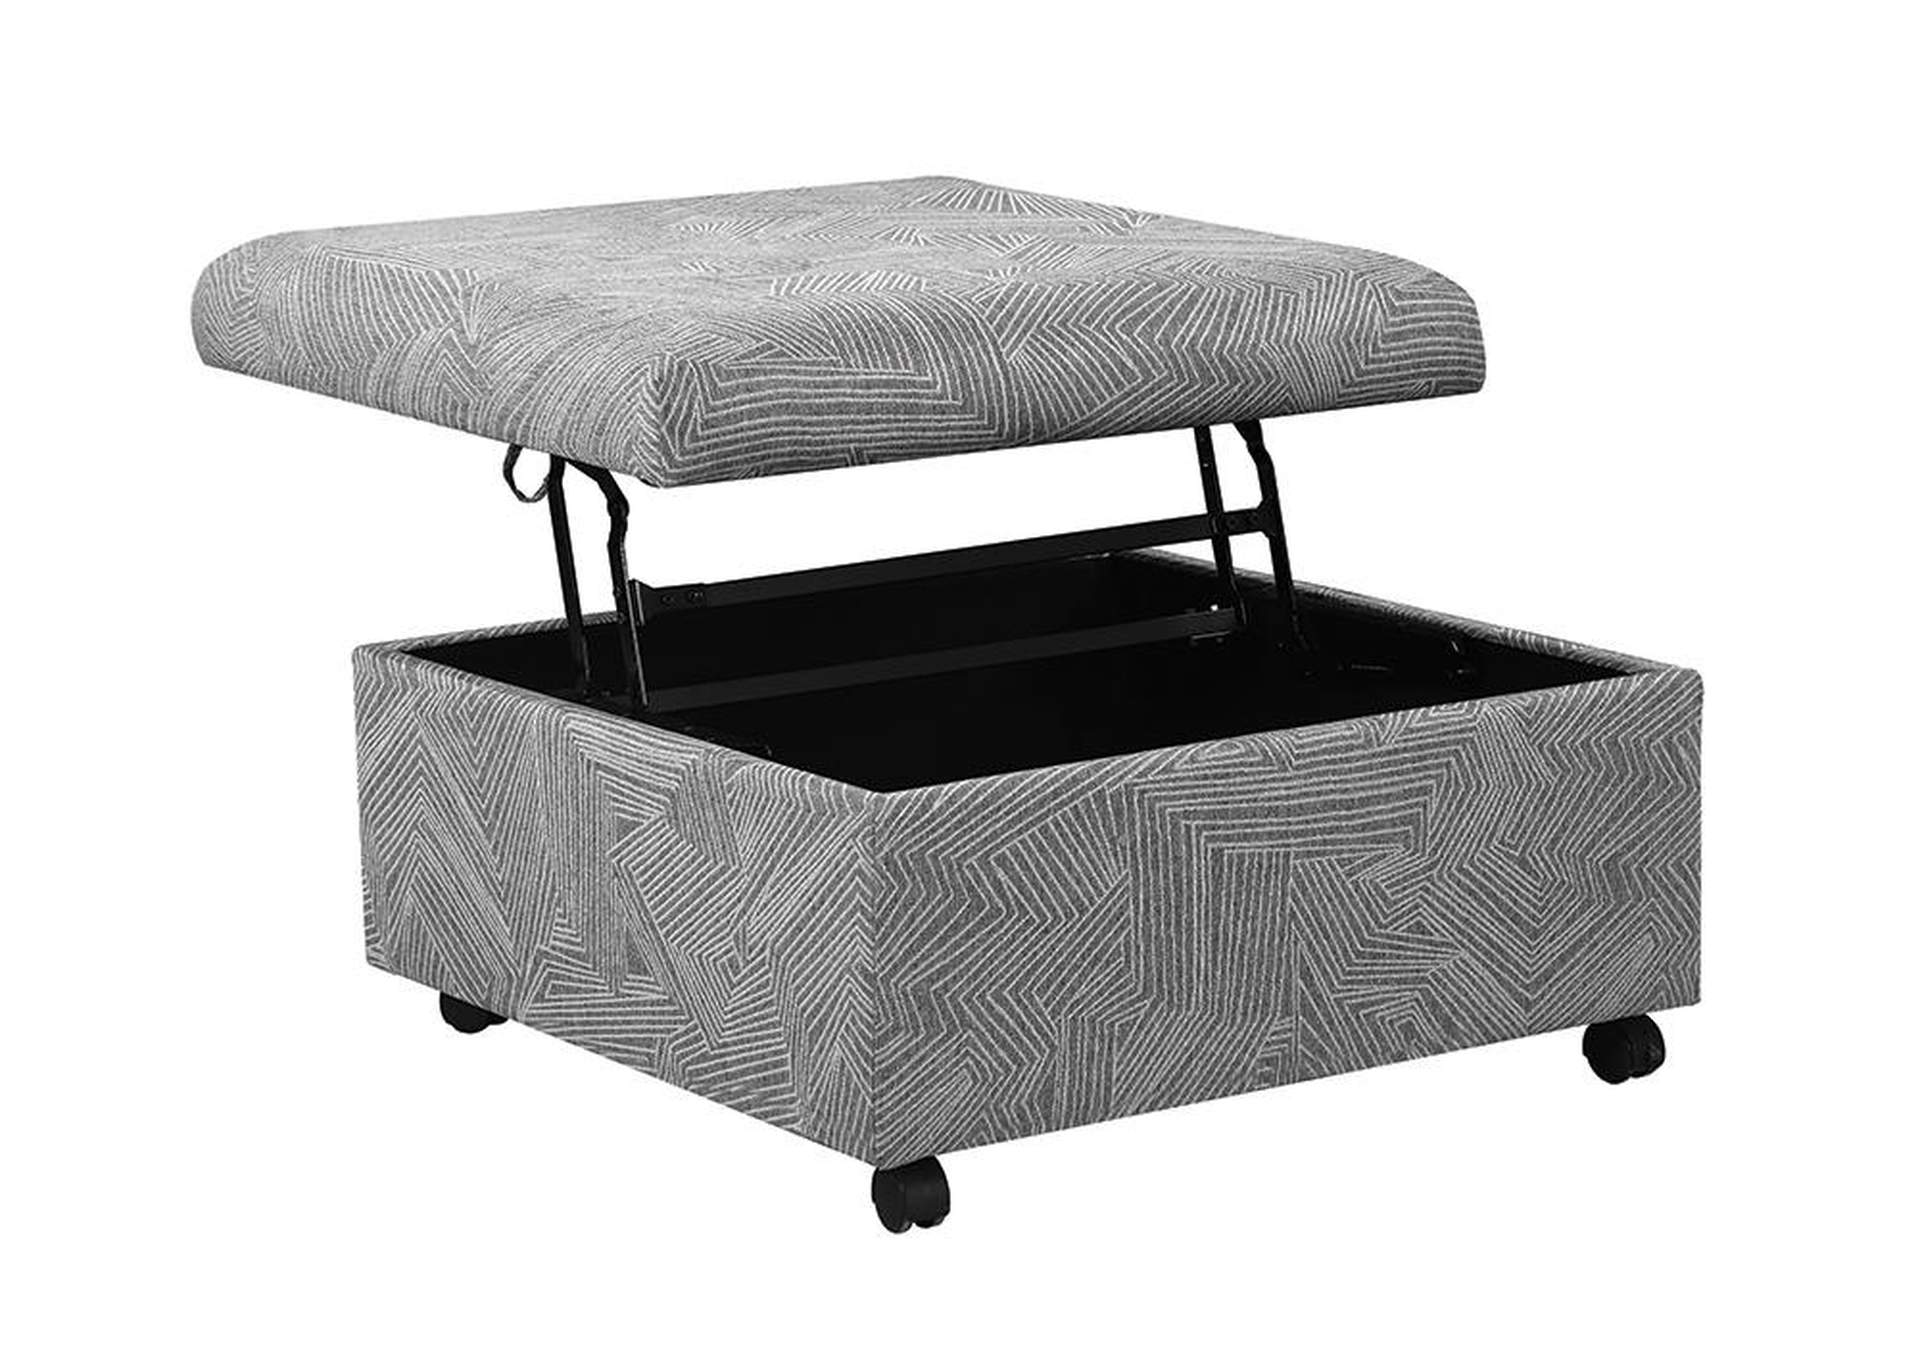 Grey Upholstered Patterned Ottoman,Coaster Furniture